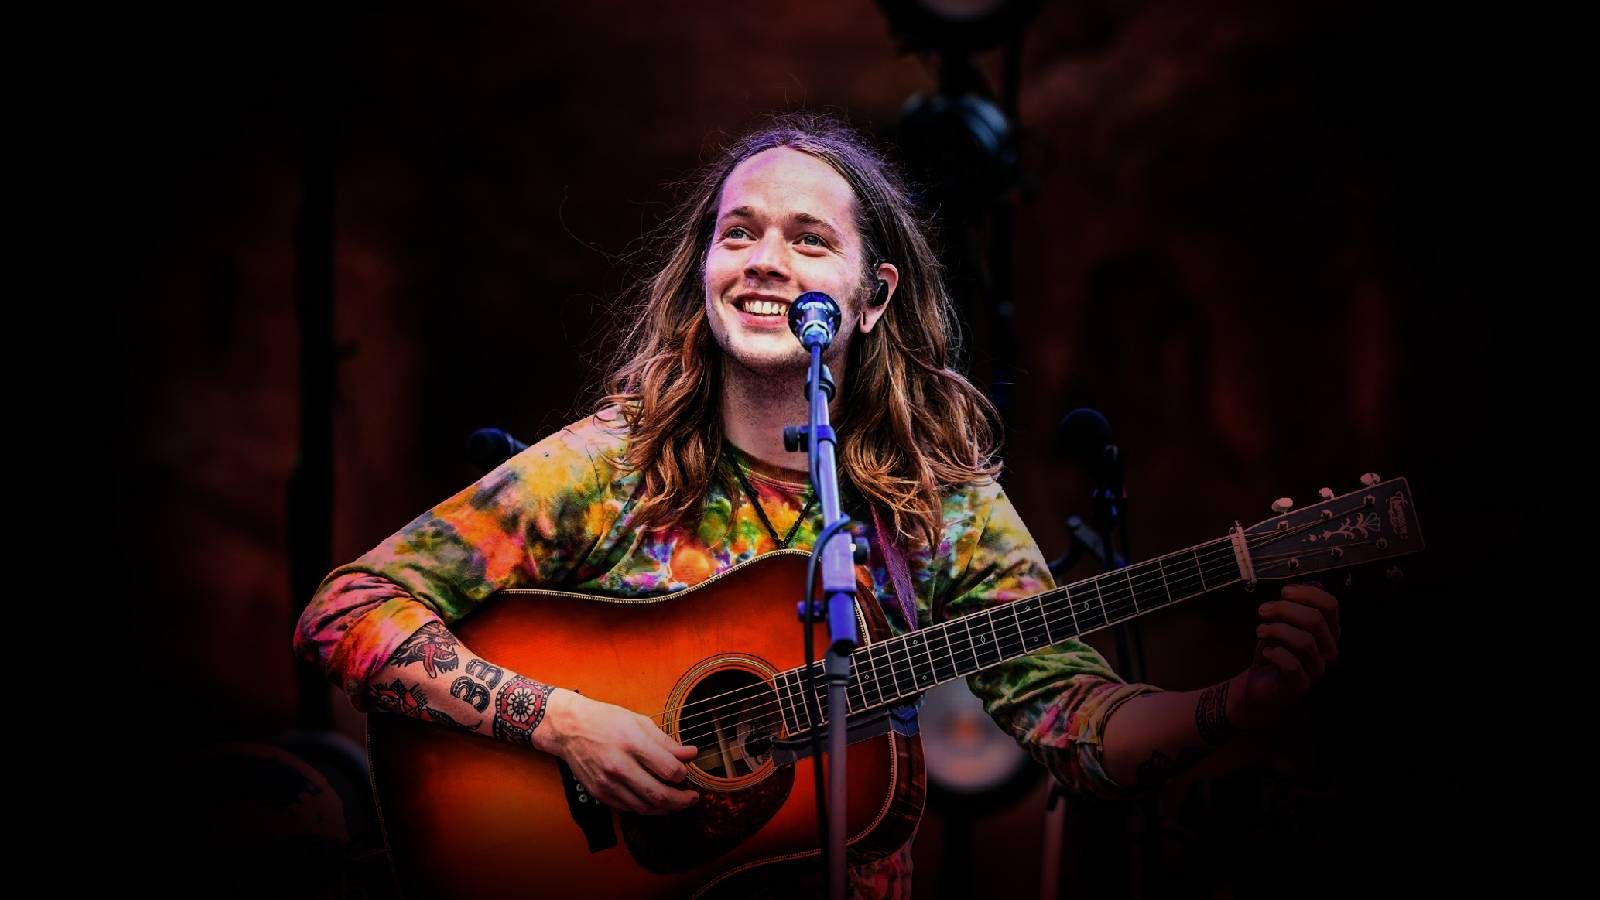 Billy Strings (18+ Event) (Rescheduled from 4/11)